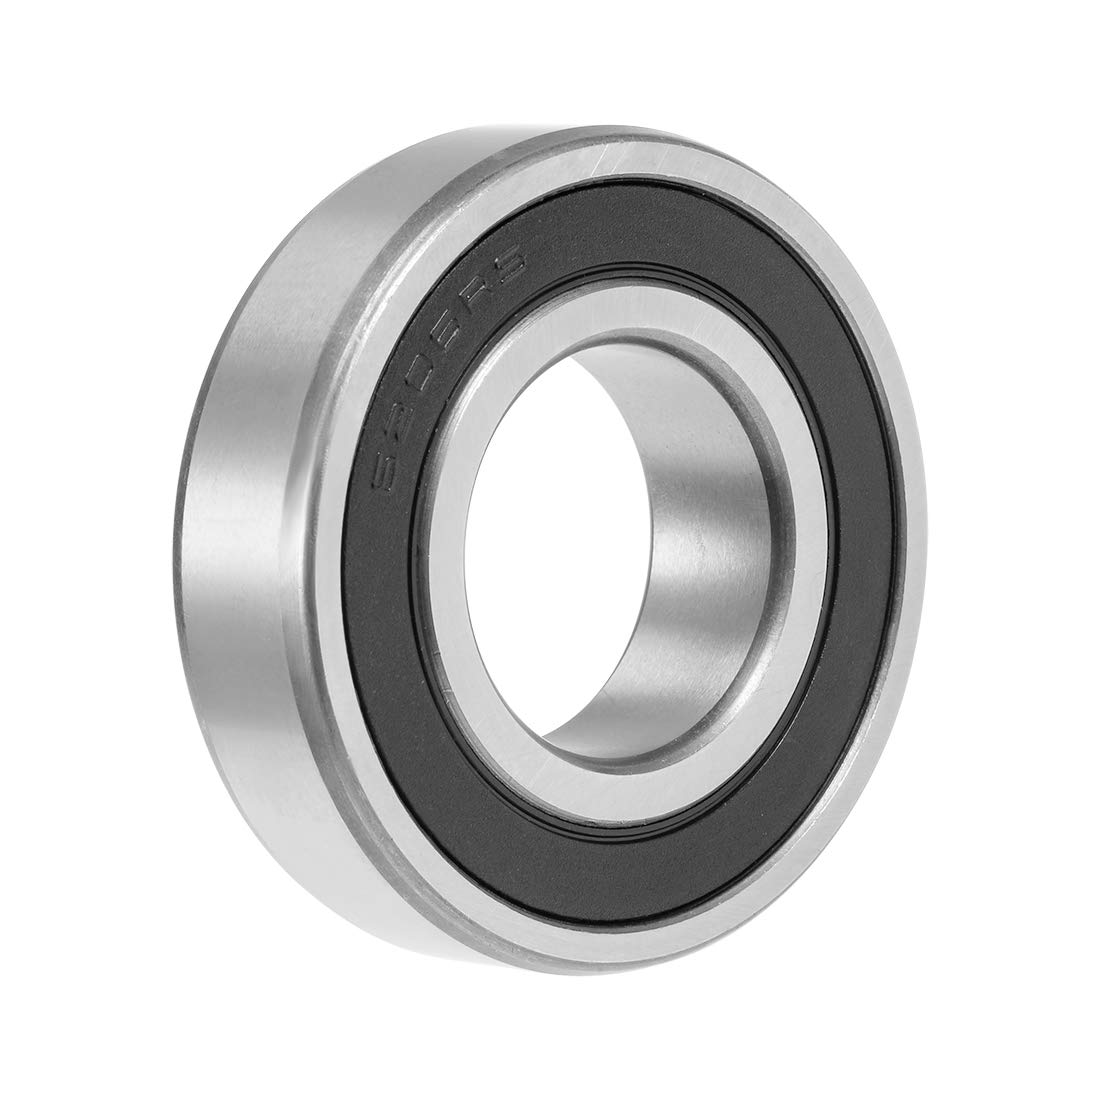 uxcell 6206-2RS Deep Groove Ball Bearing 30x62x16mm Double Sealed Chrome Steel Bearings 1-Pack